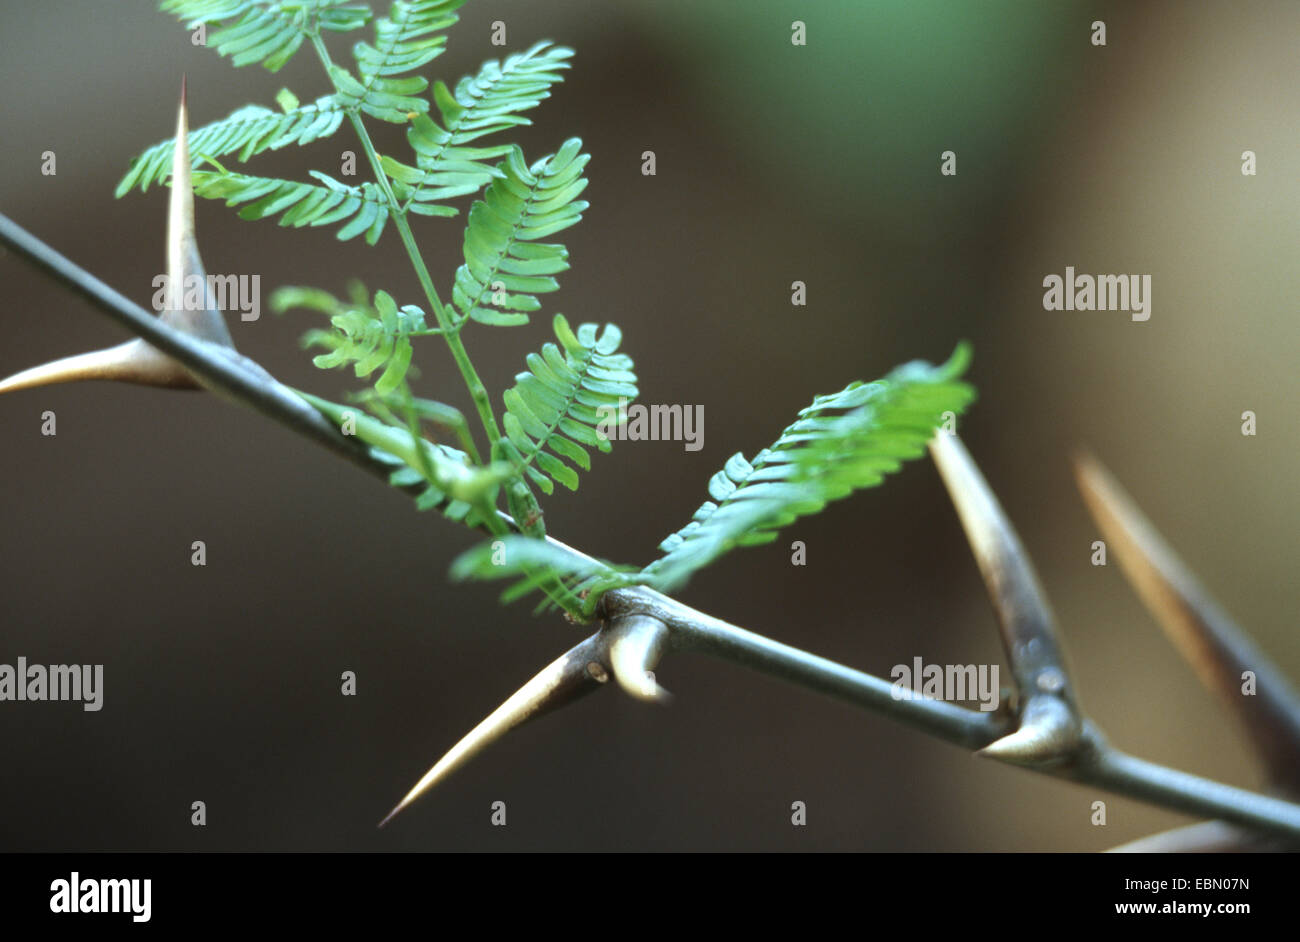 Bullhorn Acacia (Acacia cornigera), twigs with spins - Stock Image